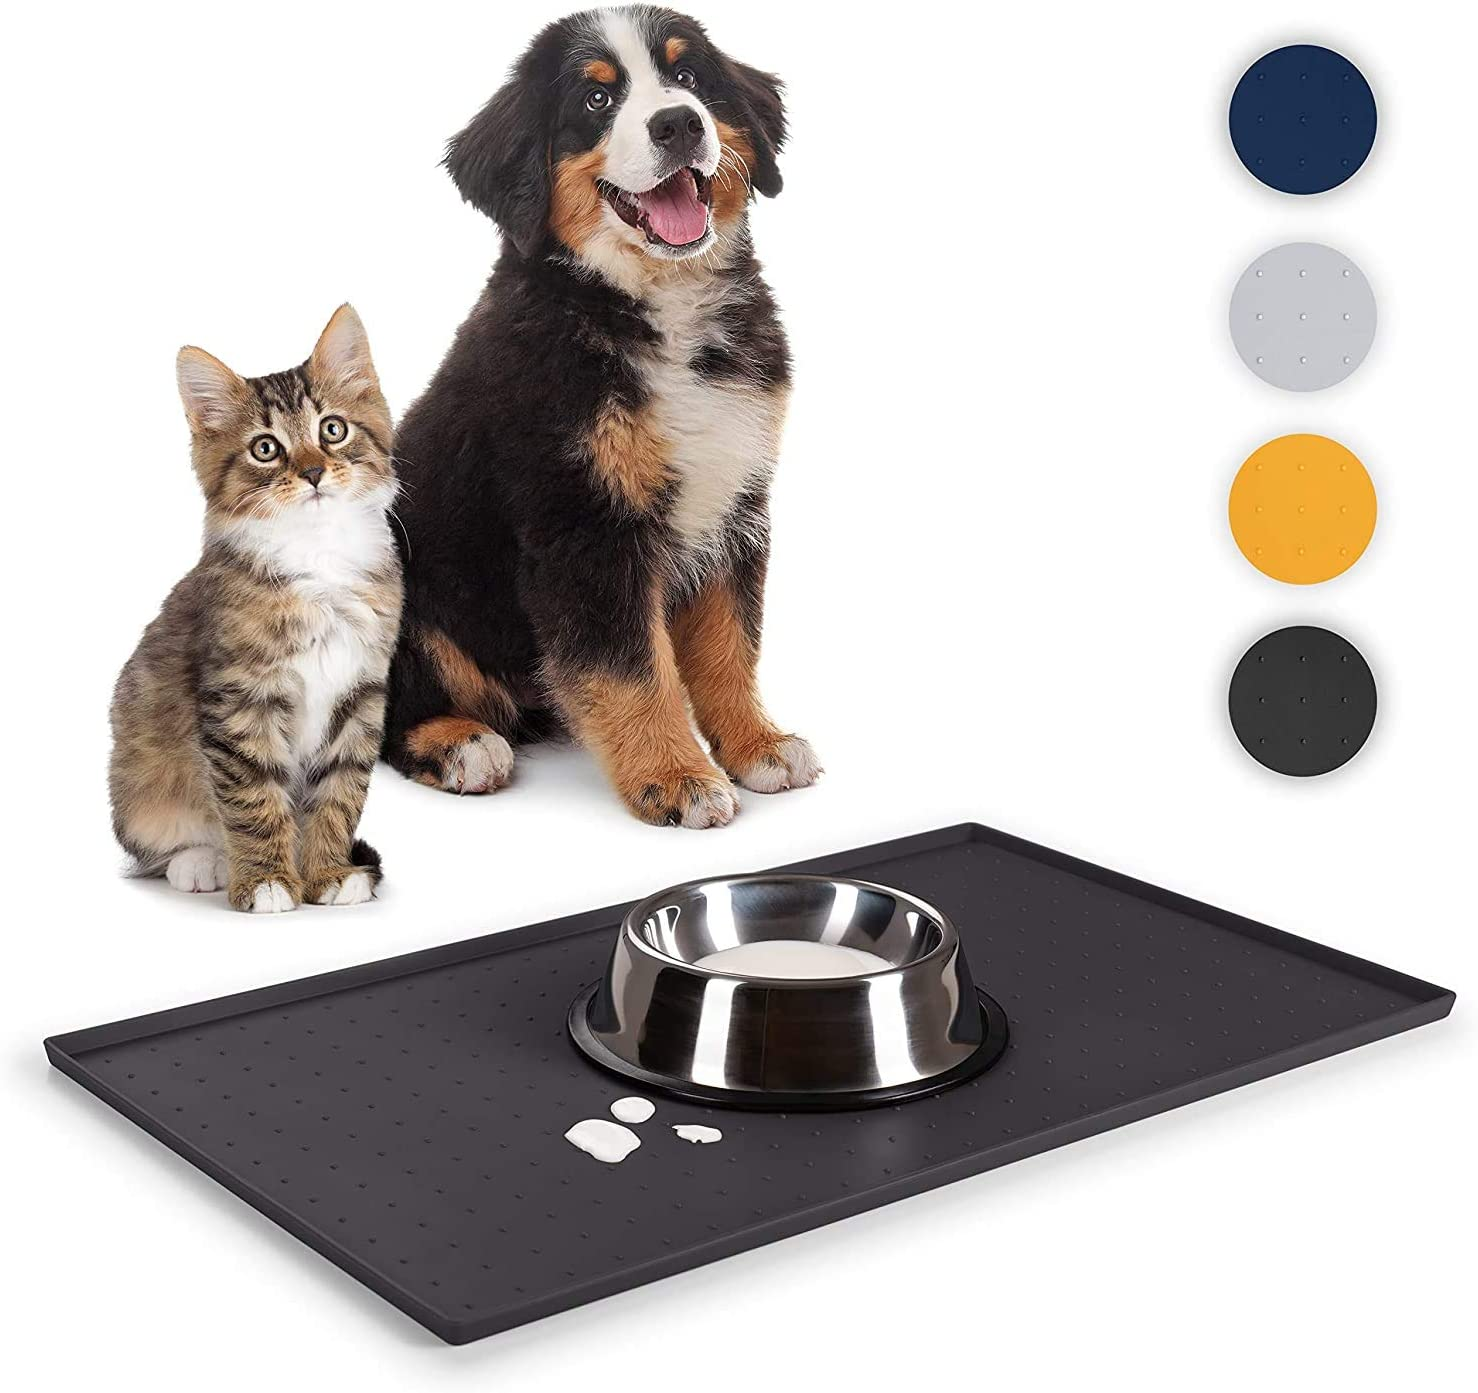 Food Mat - Dog Cat Bowl Mat for Food and Water - Lifetime Replacement Guarantee- Washable Silicone Non-Slip Waterproof Pet Food Mat for Puppy and Small Medium Large Animals